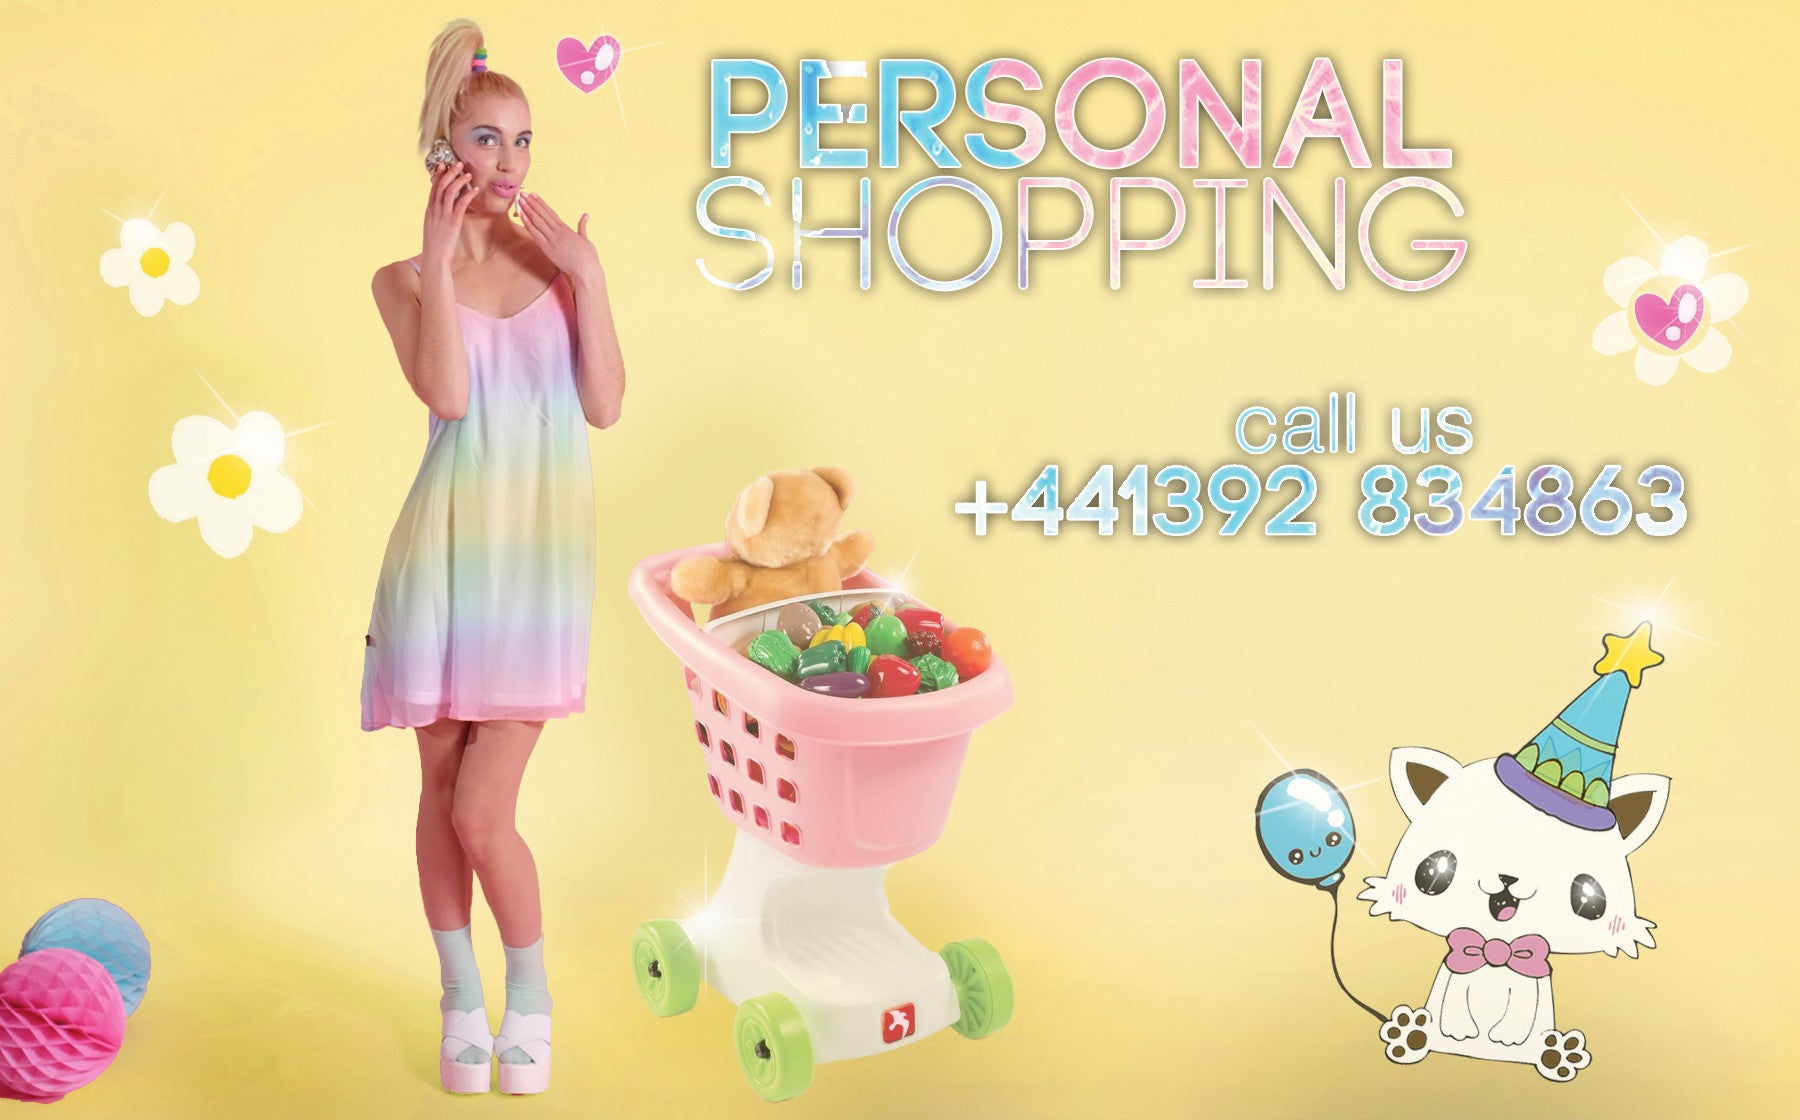 Personal Shopping! Call us now.